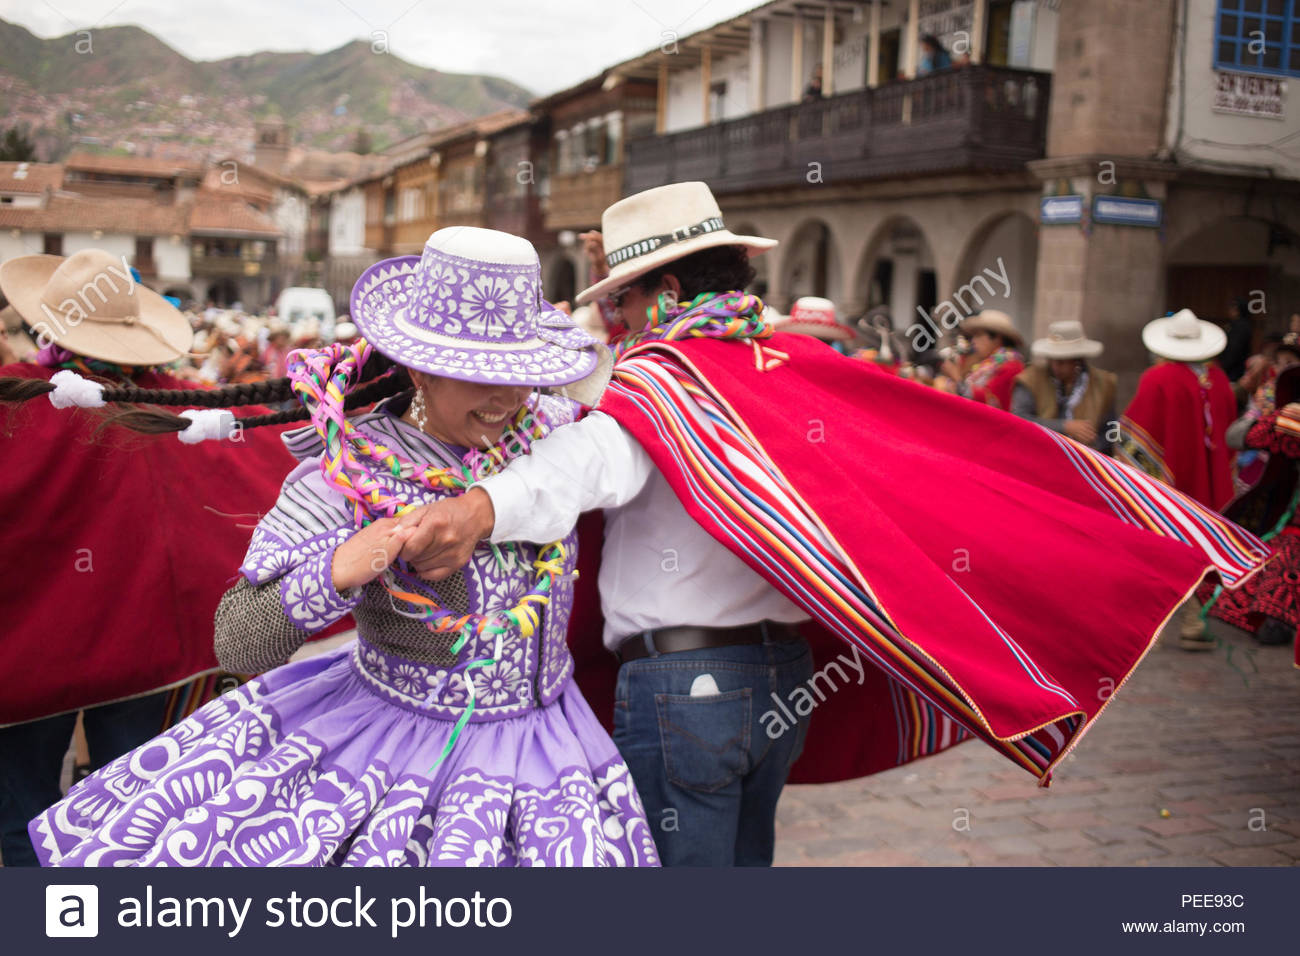 Men and women from the nearby regions of Cusco wear dresses and ponchos, singing and playing instruments at a yearly Carnival celebration of harvest and fertility in the Plaza de Armas in Cusco. - Stock Image